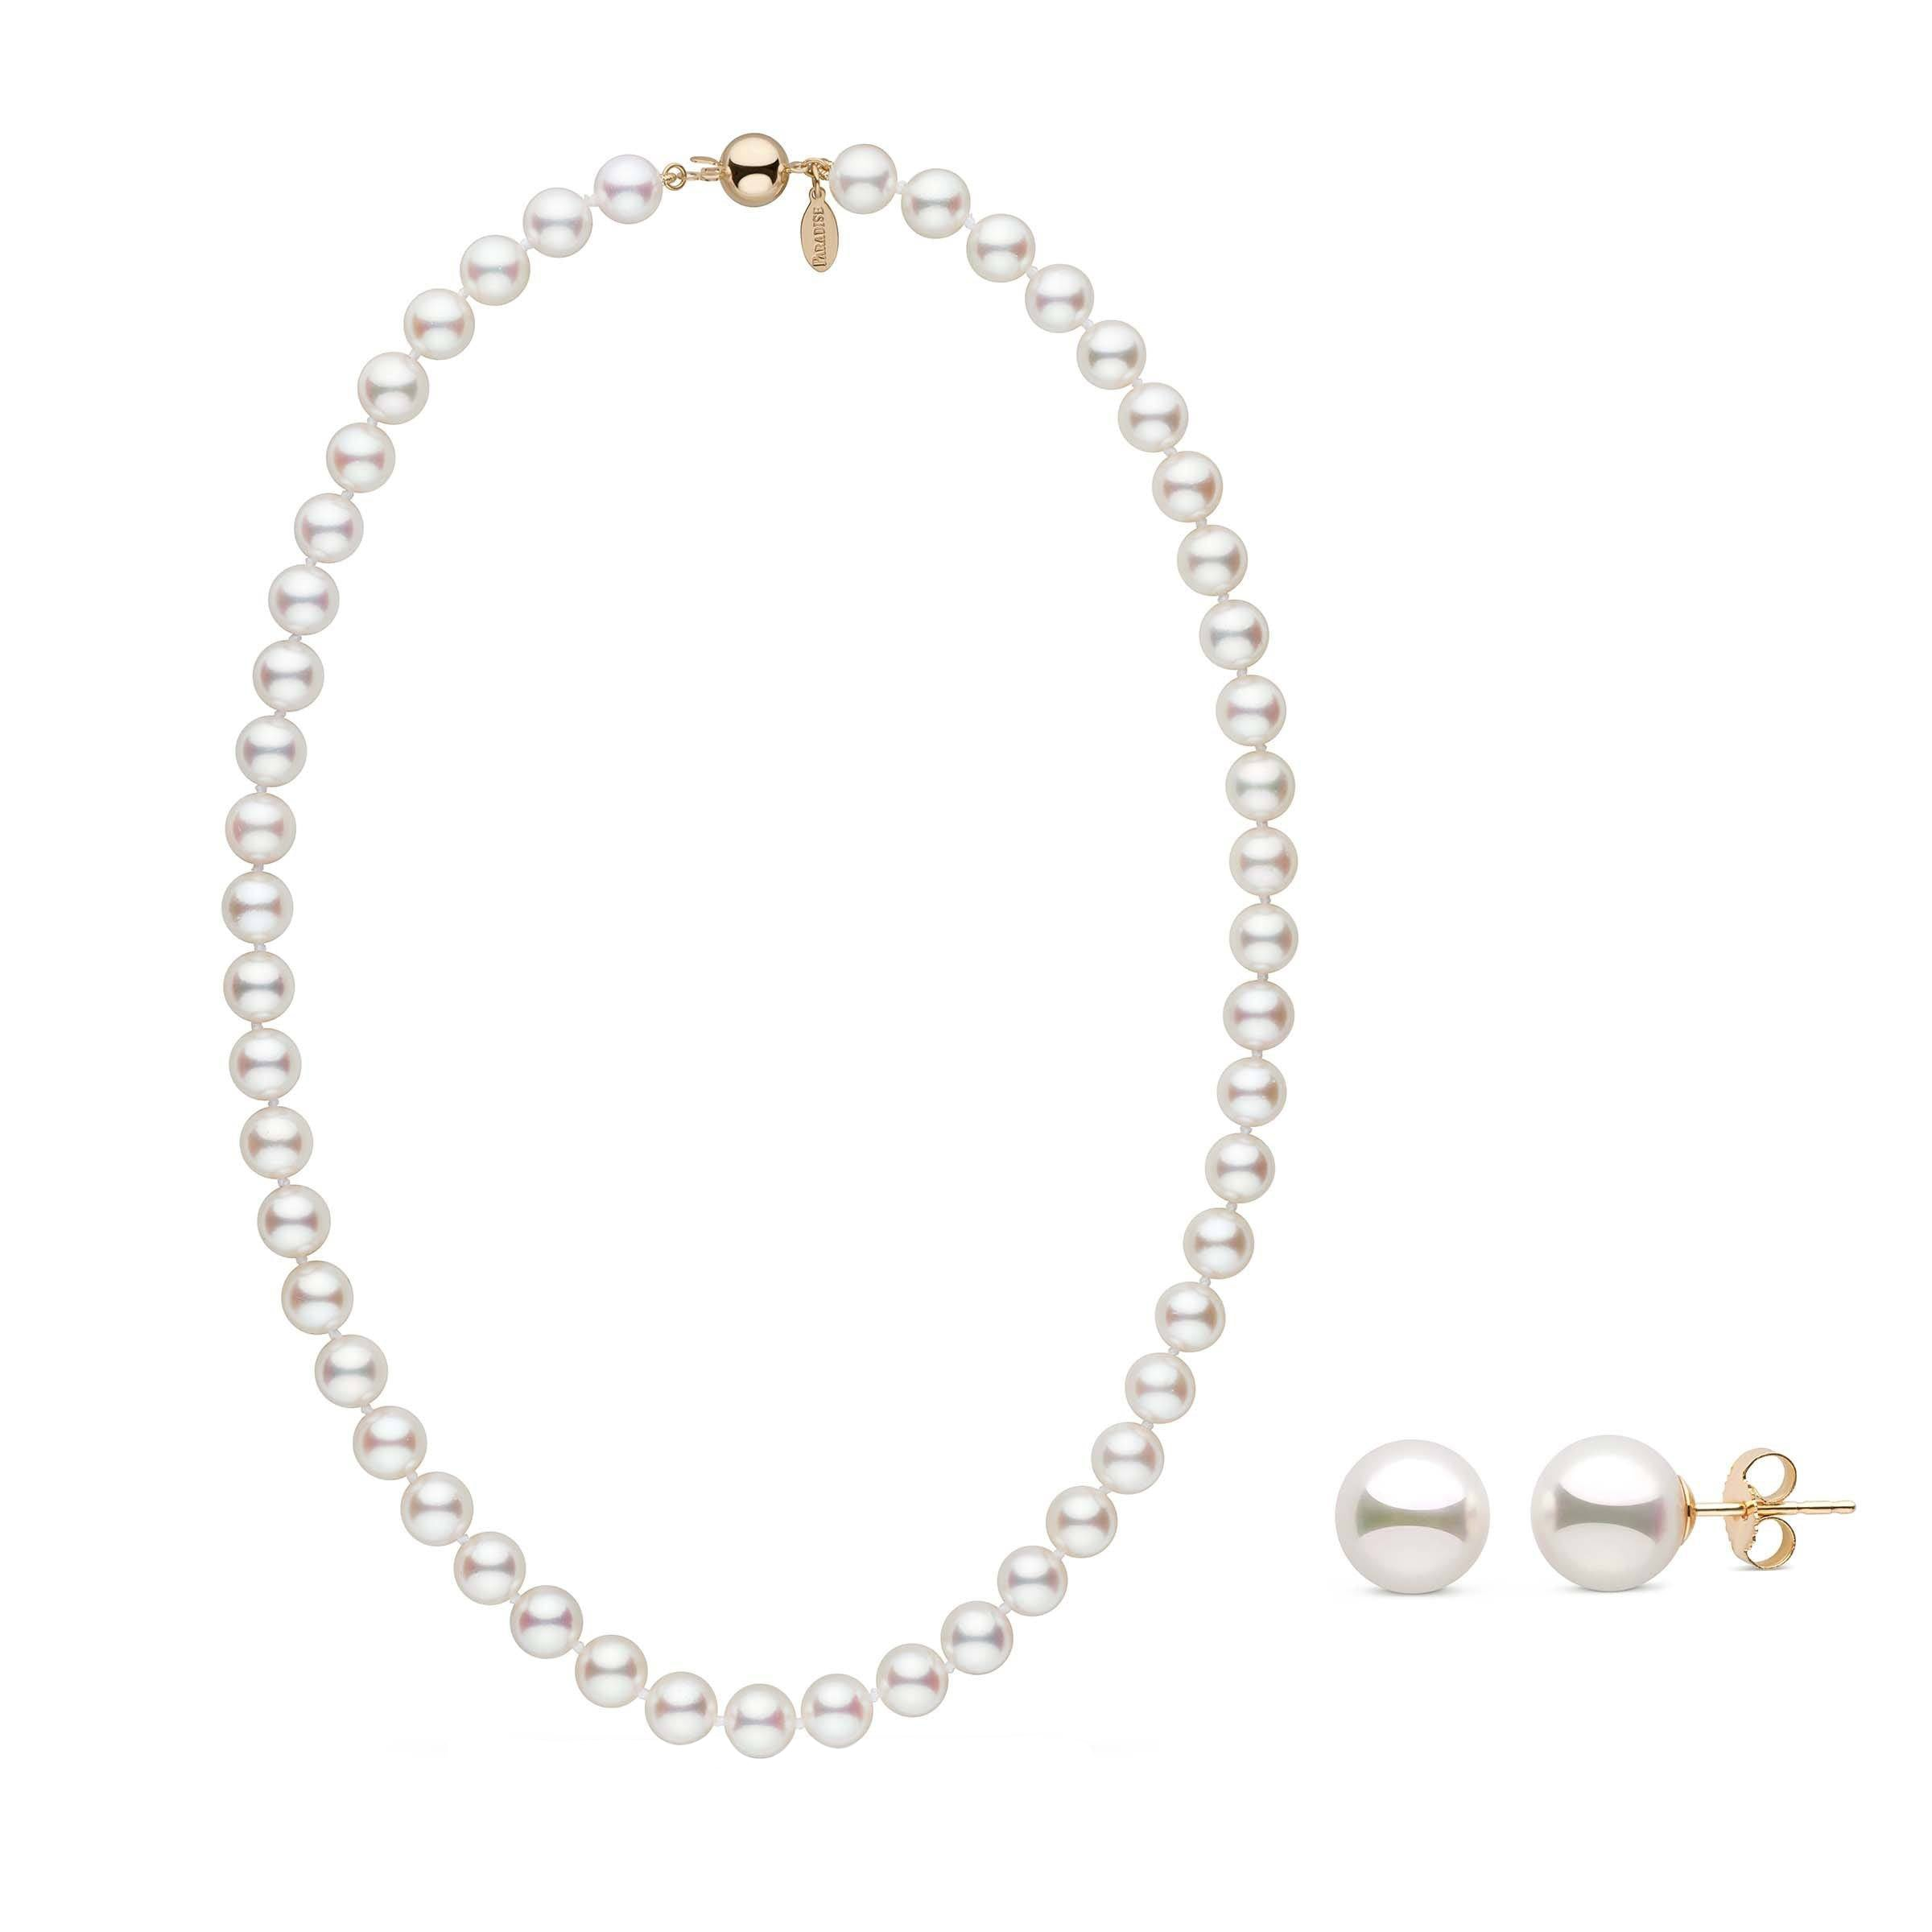 8.0-8.5 mm White Hanadama Akoya Pearl Set